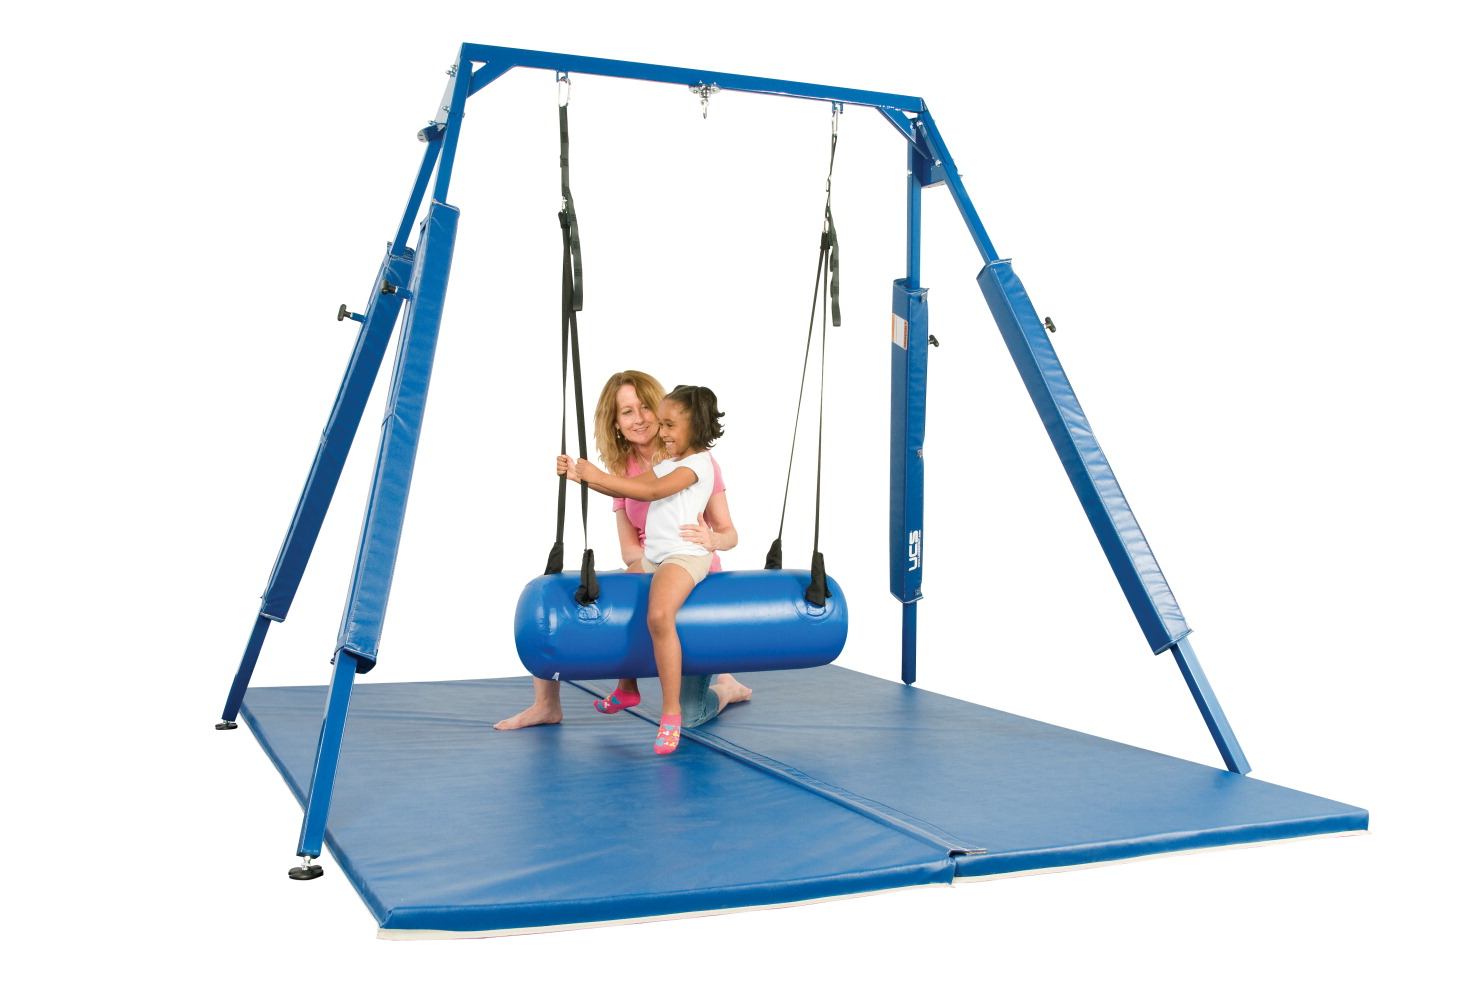 Abilitations Sensory Swing Frame - SCHOOL SPECIALTY MARKETPLACE